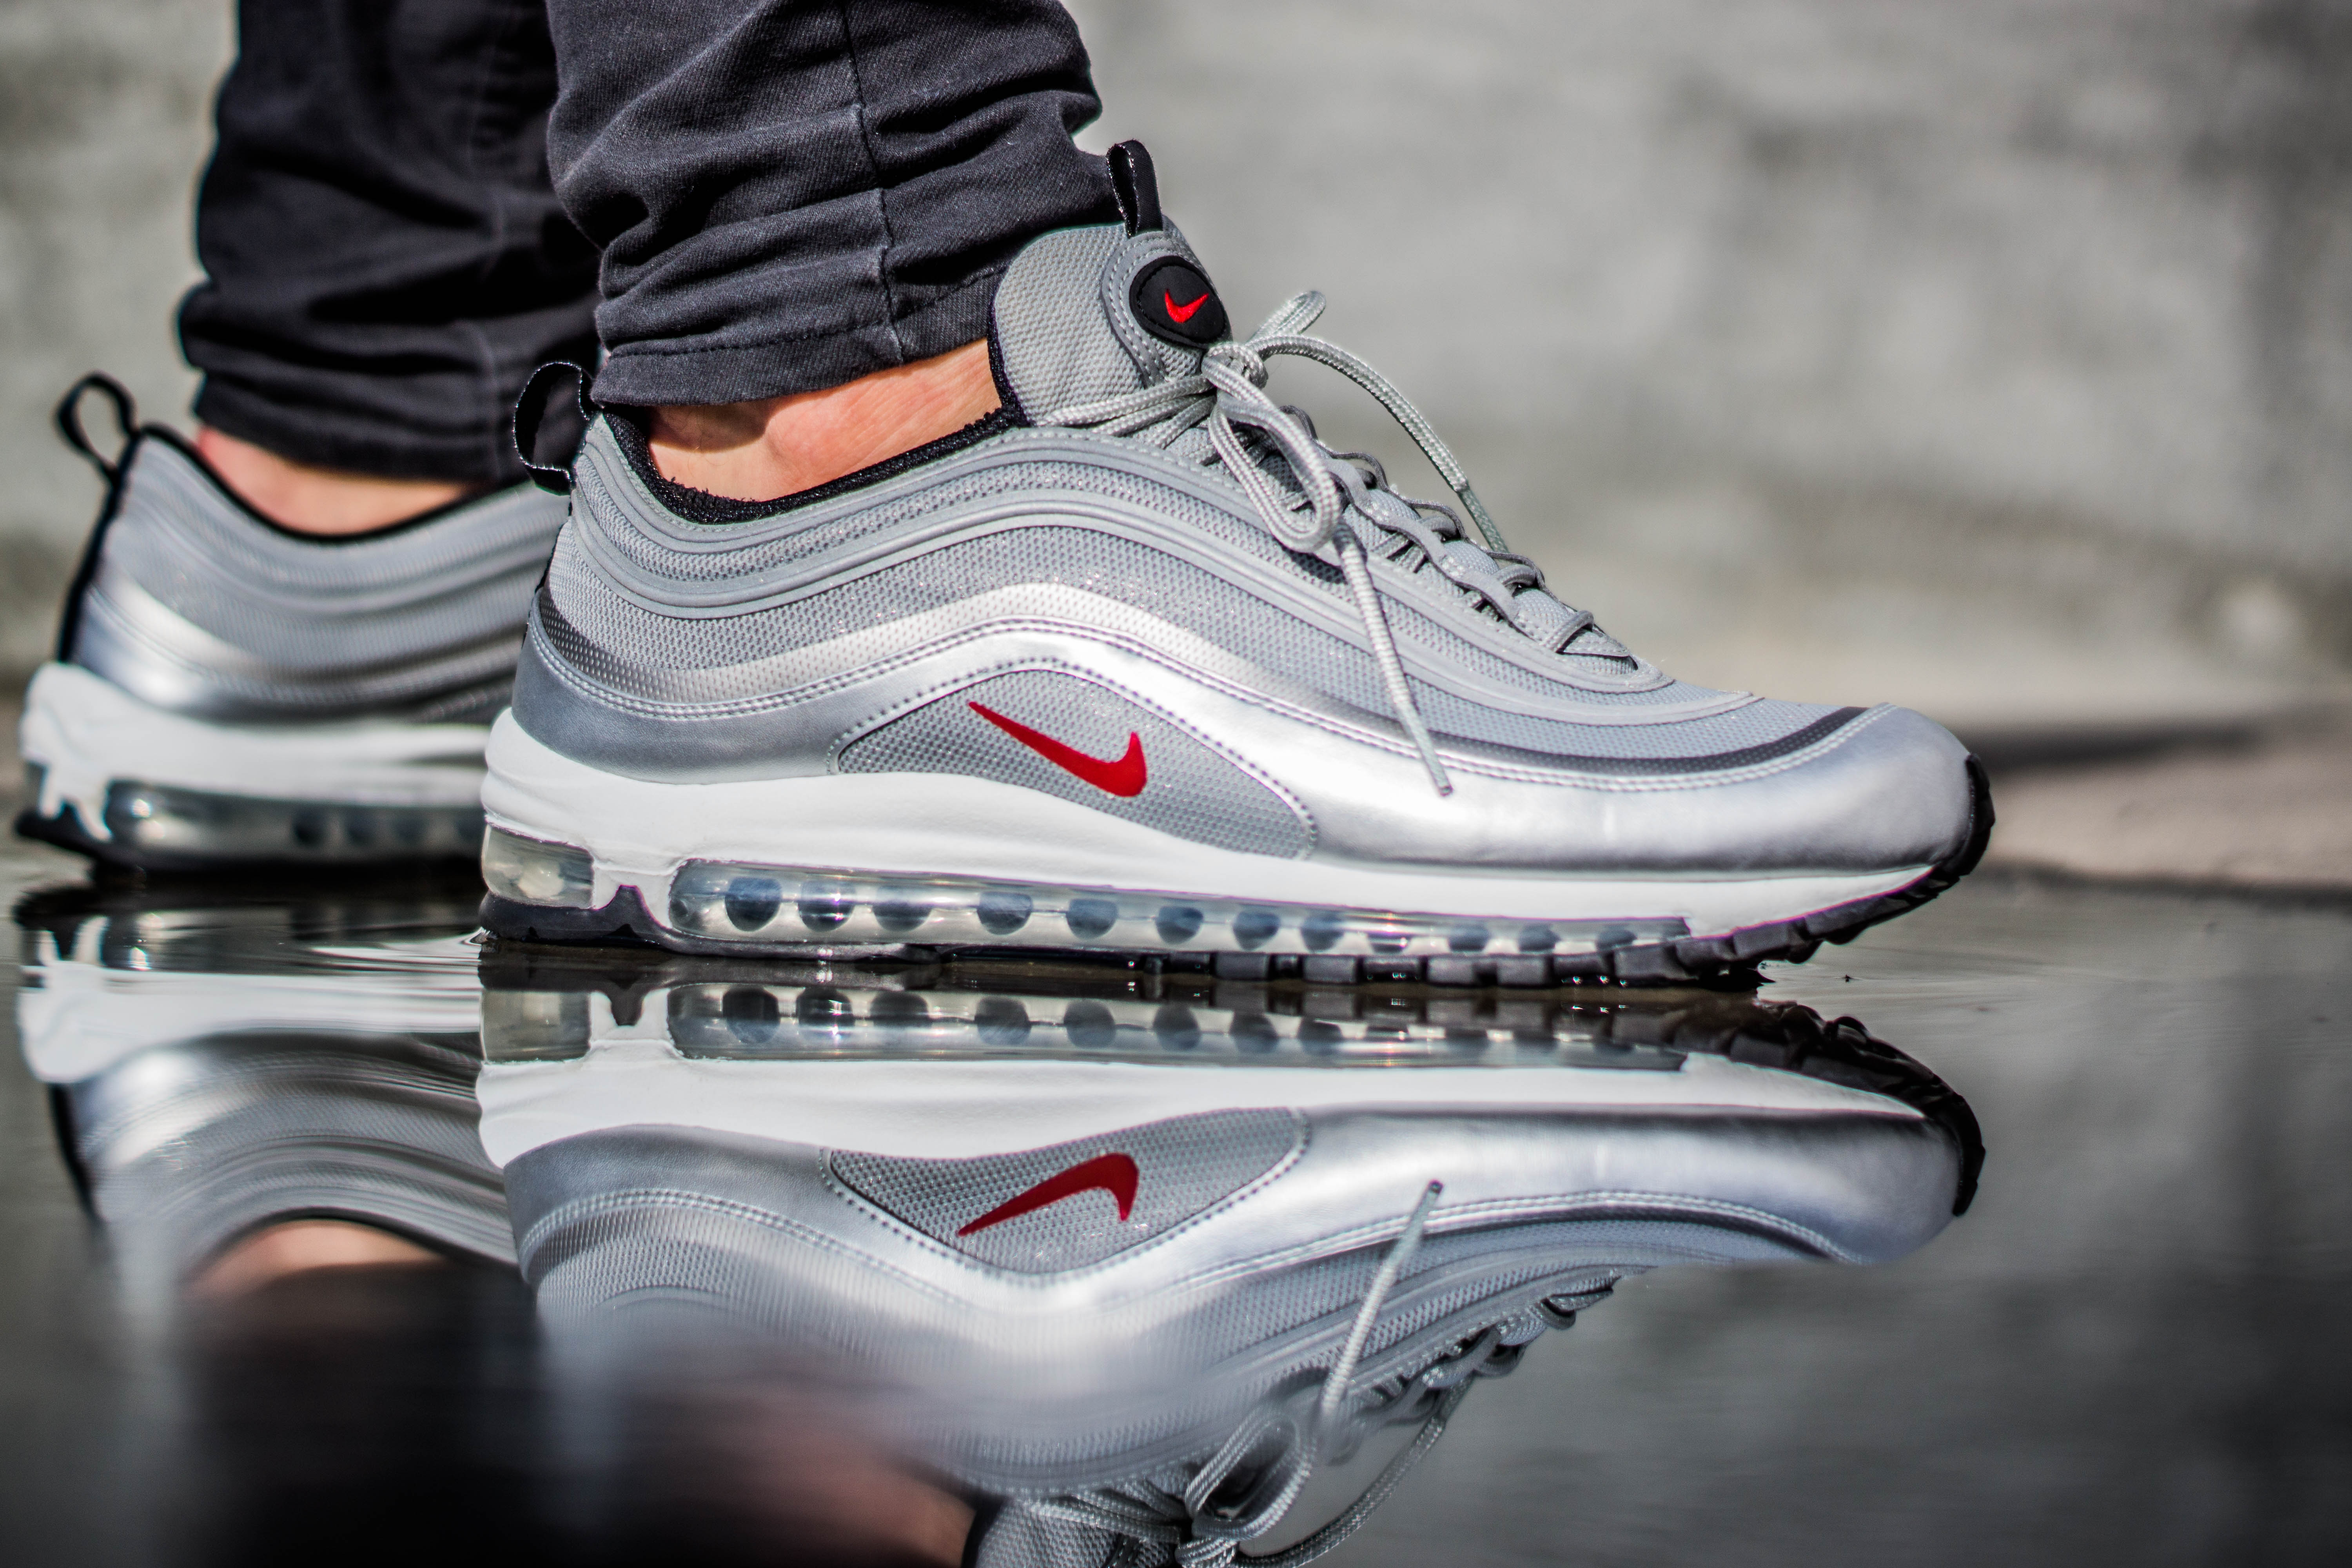 The Nike Air Max 97 S Make A Major Comeback For Its 20th Anniversary